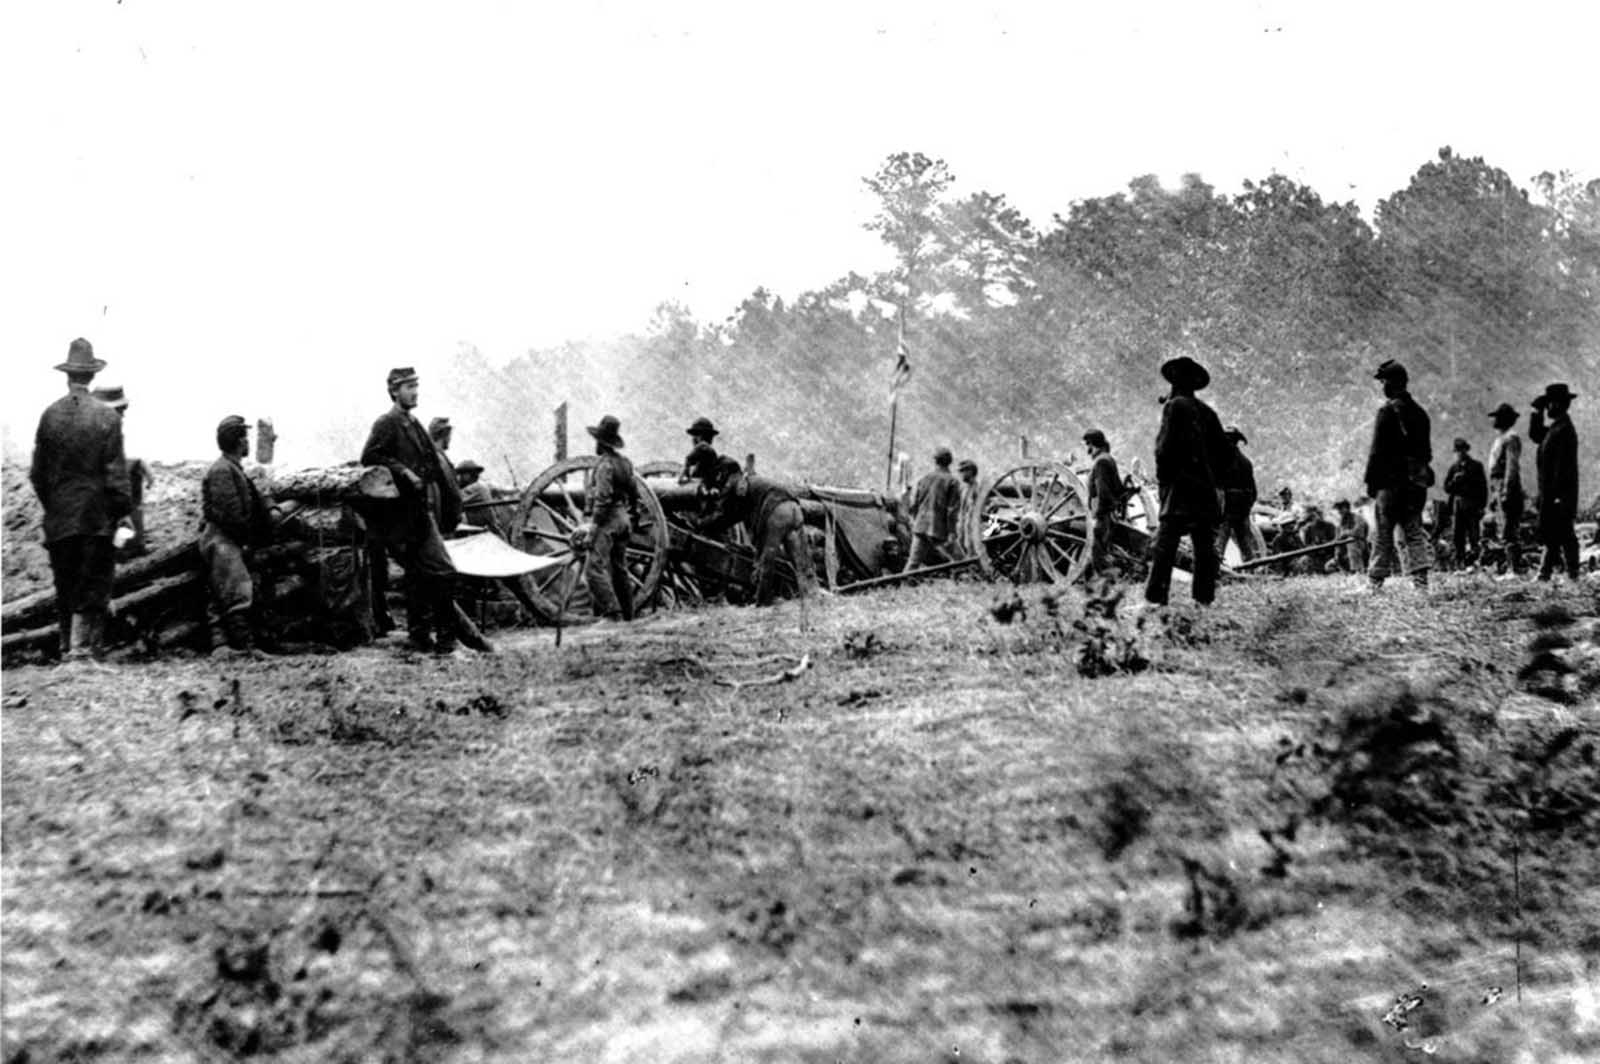 Union forces of Benson's Battery in the Battle of Seven Pines stand guard in the fighting against Gen. Thomas